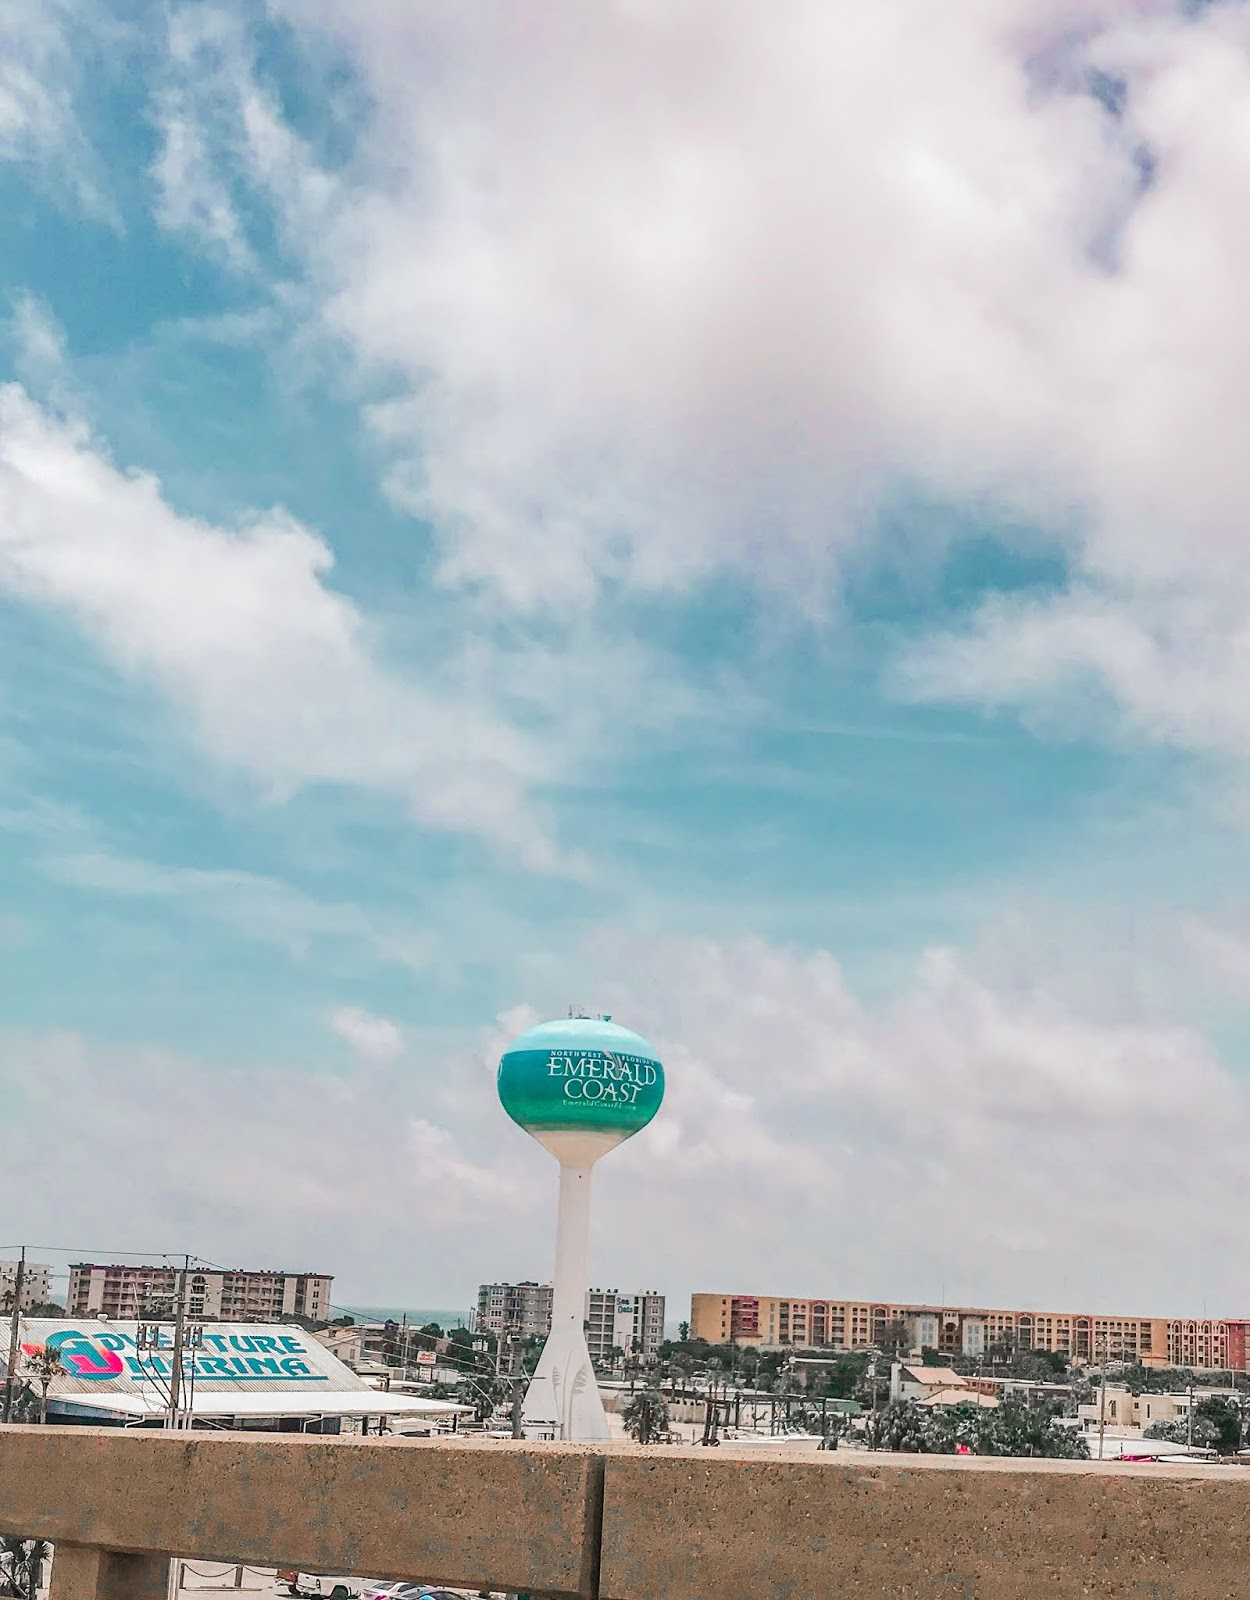 The Emerald Coast Ball Tower